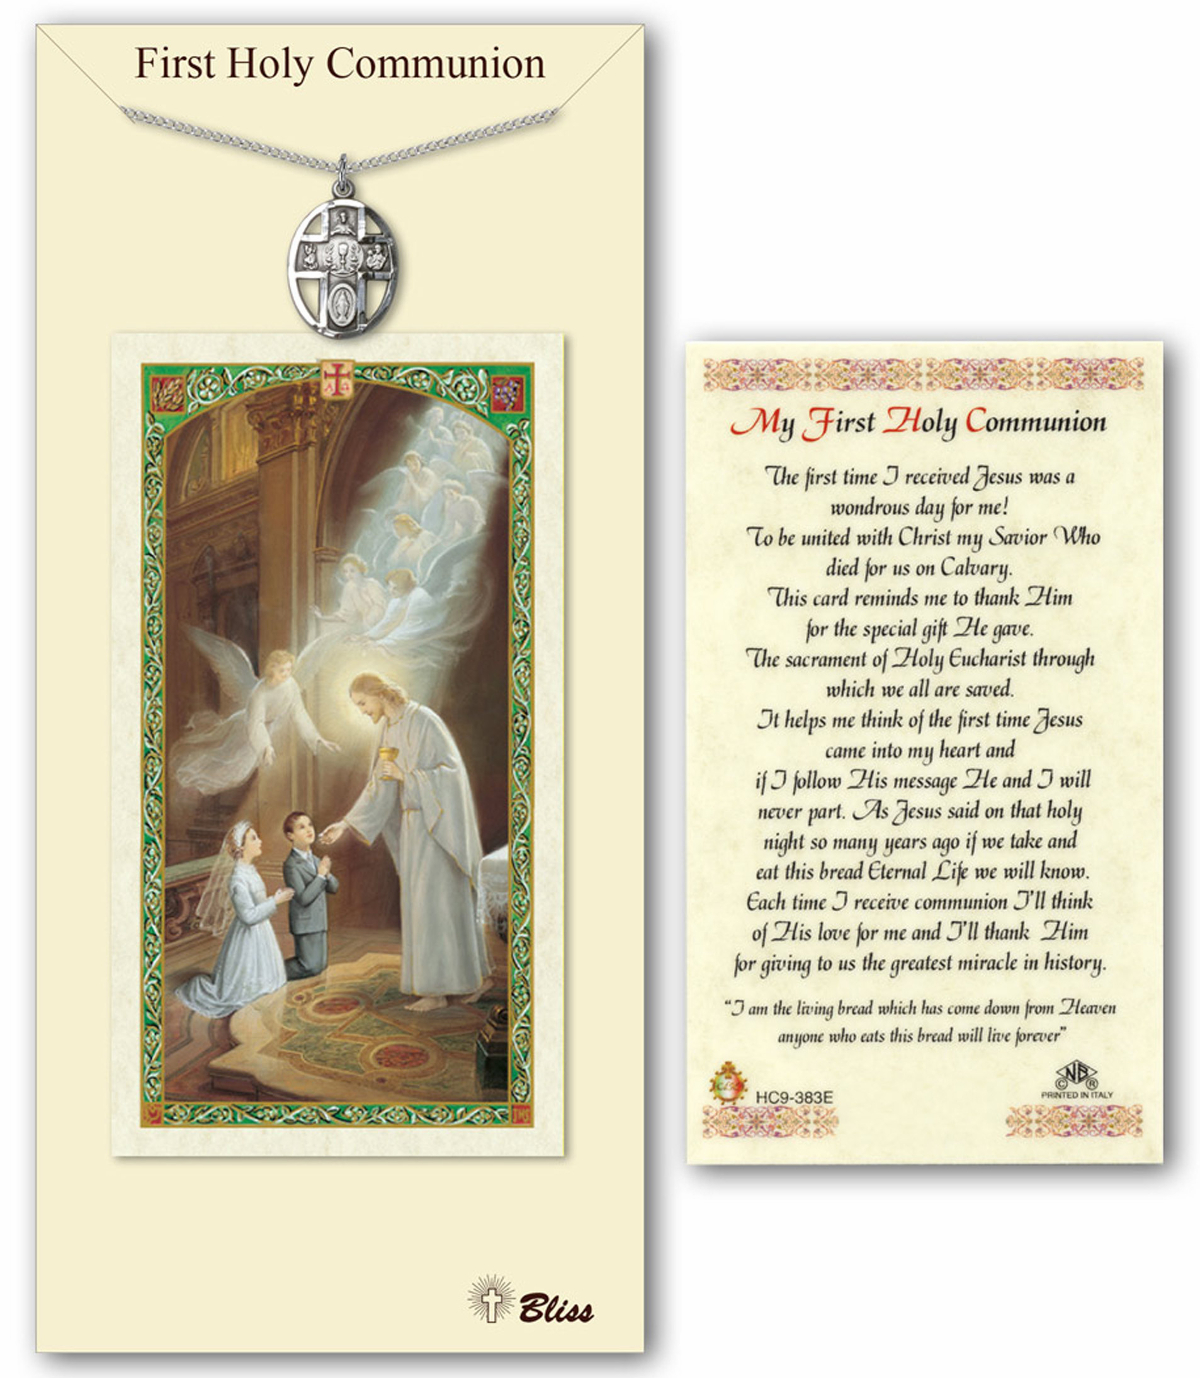 Bliss My First Holy Communion Pewter Pendant and Prayer Card Set